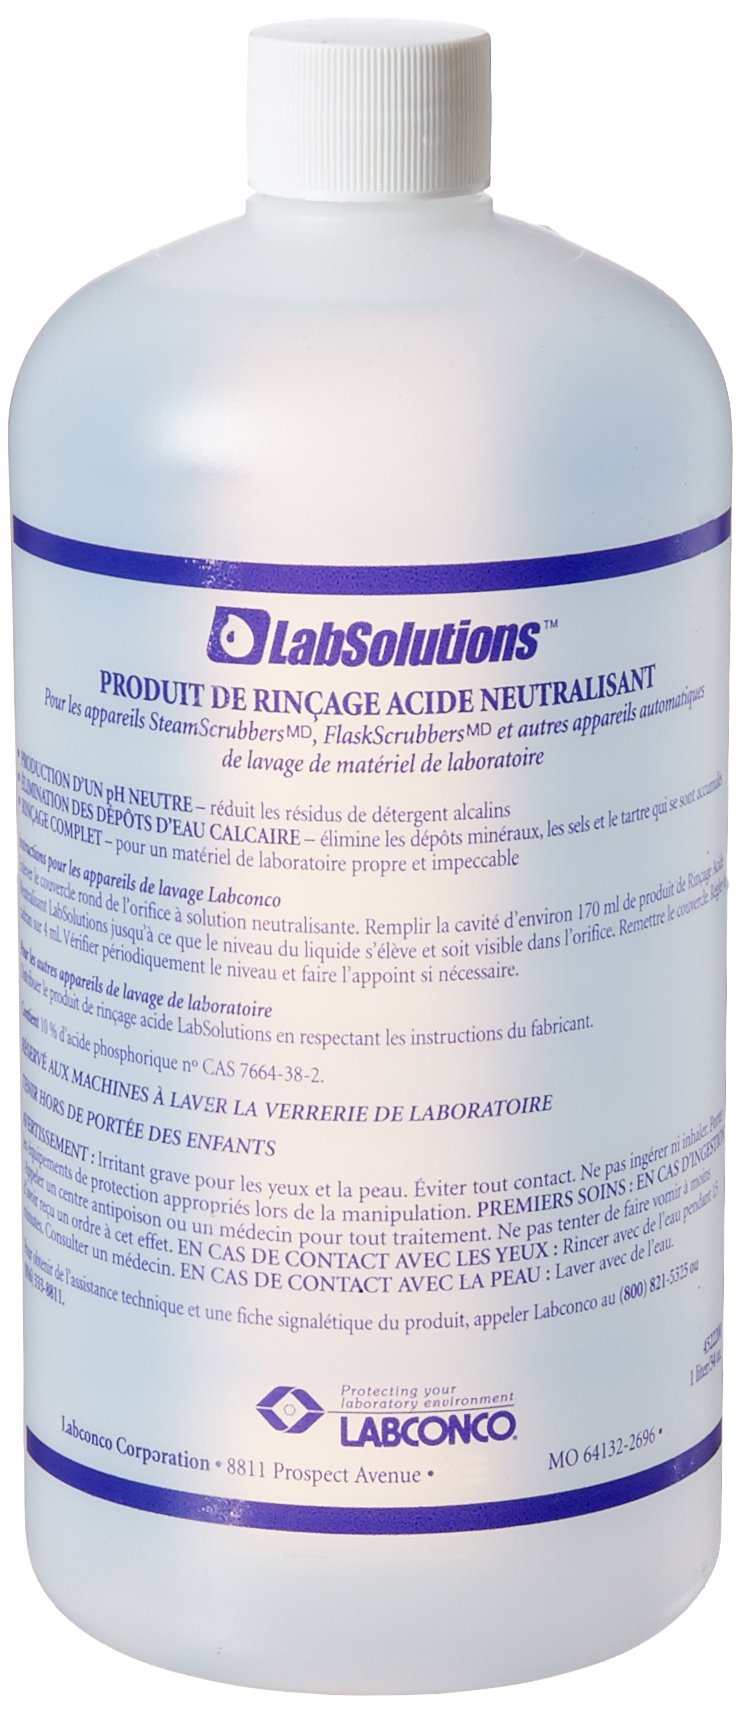 Labconco 4522200 LabSolutions Neutralizing Acid Rinse, 2.7 lbs Volume